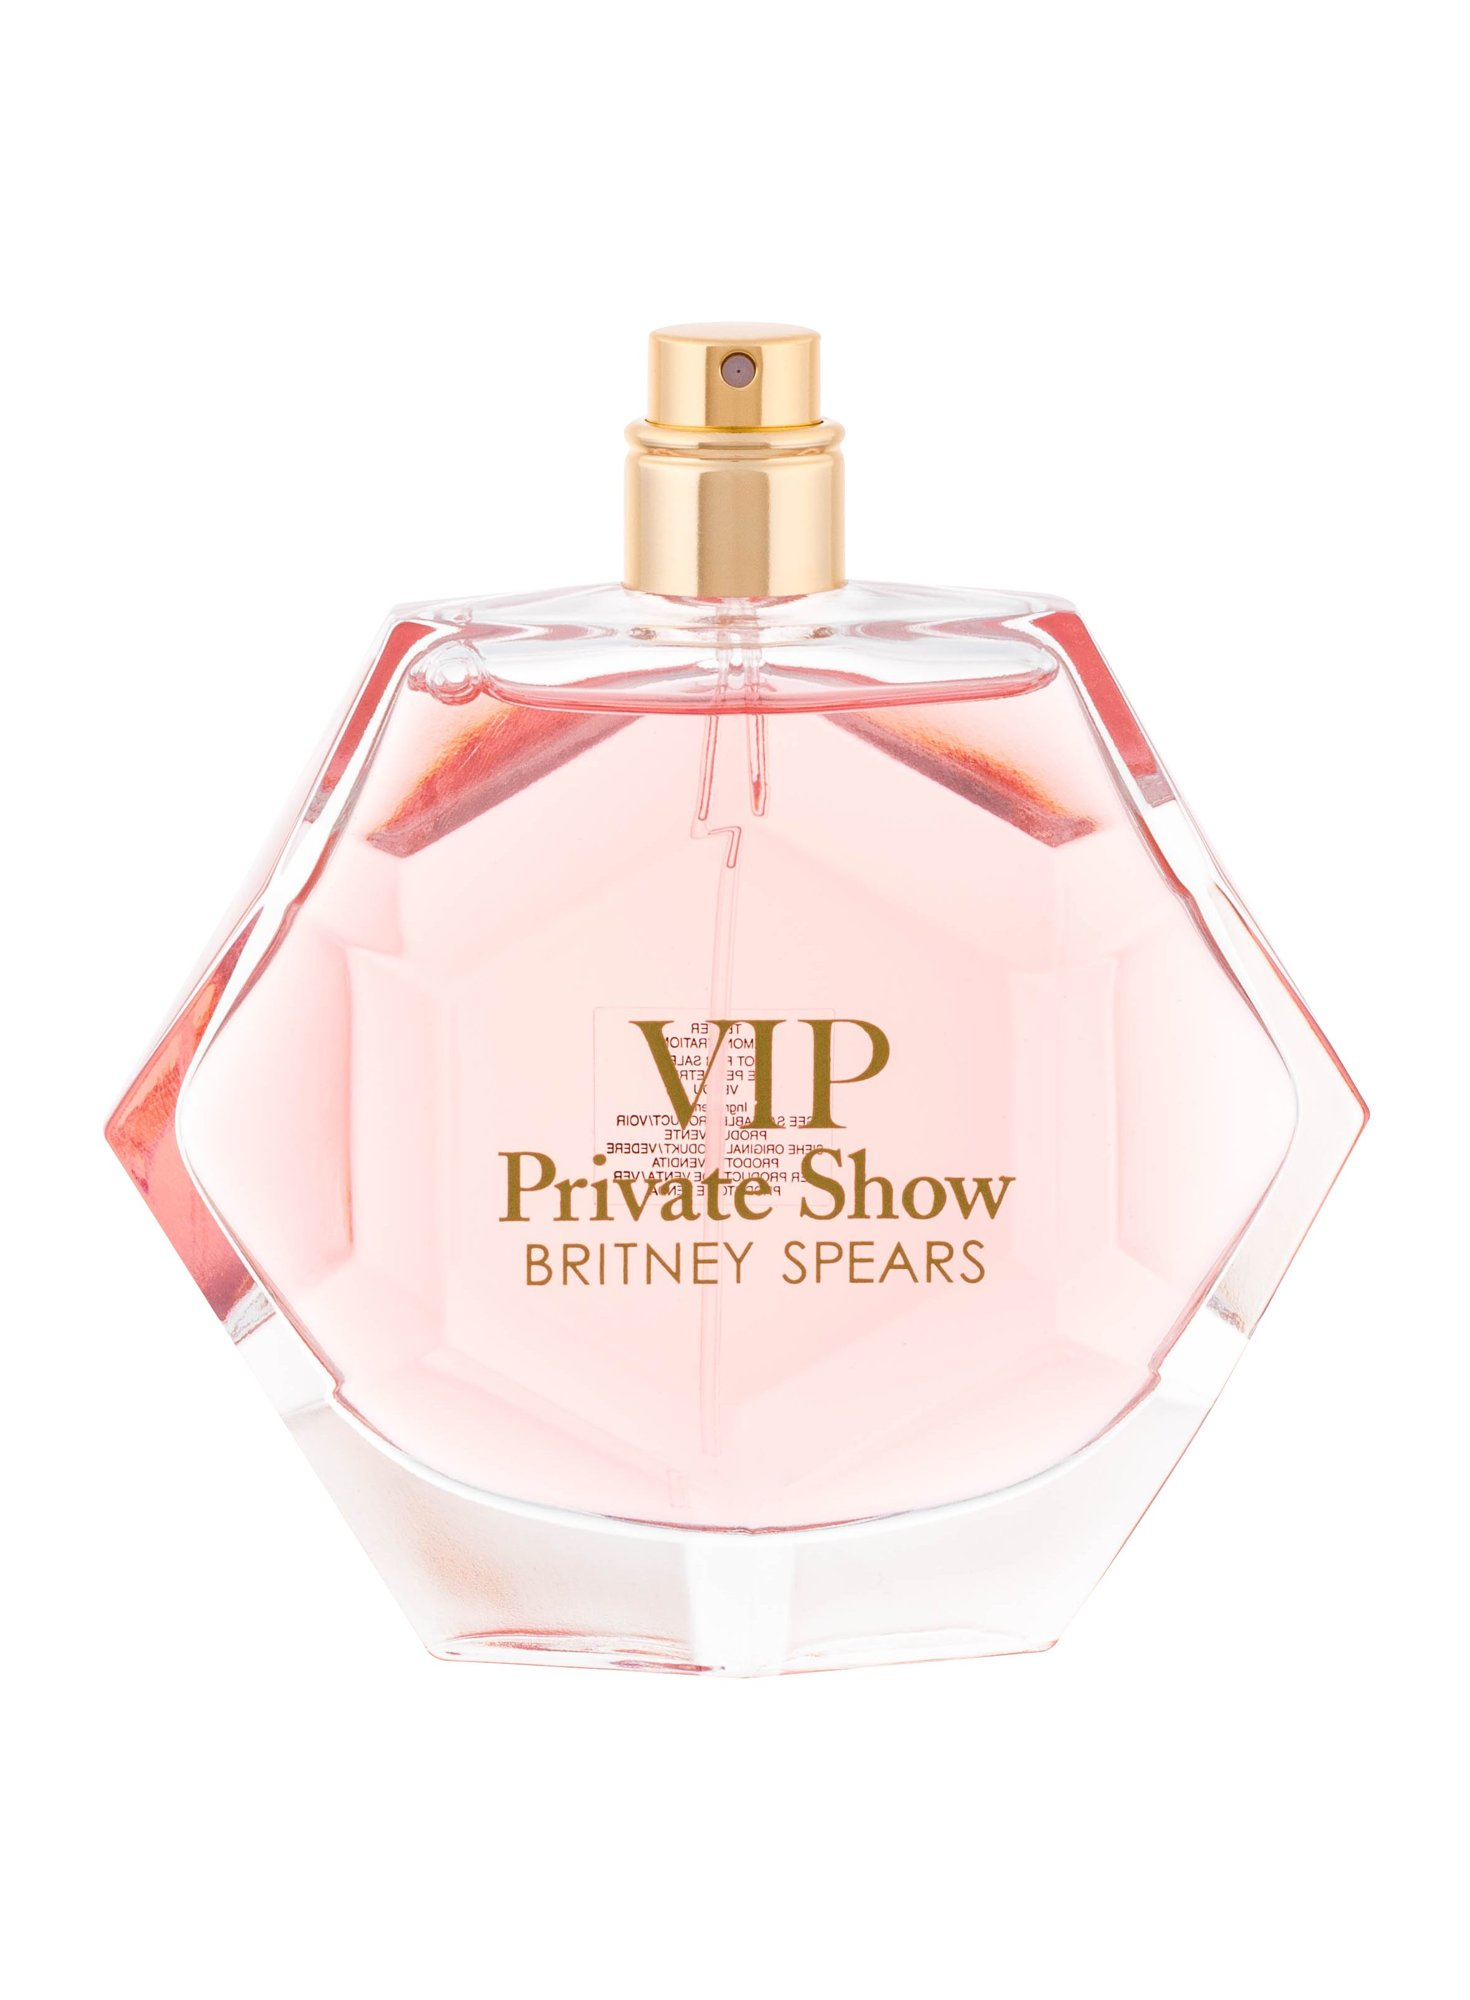 Britney Spears VIP Private Show Eau de Parfum 100ml